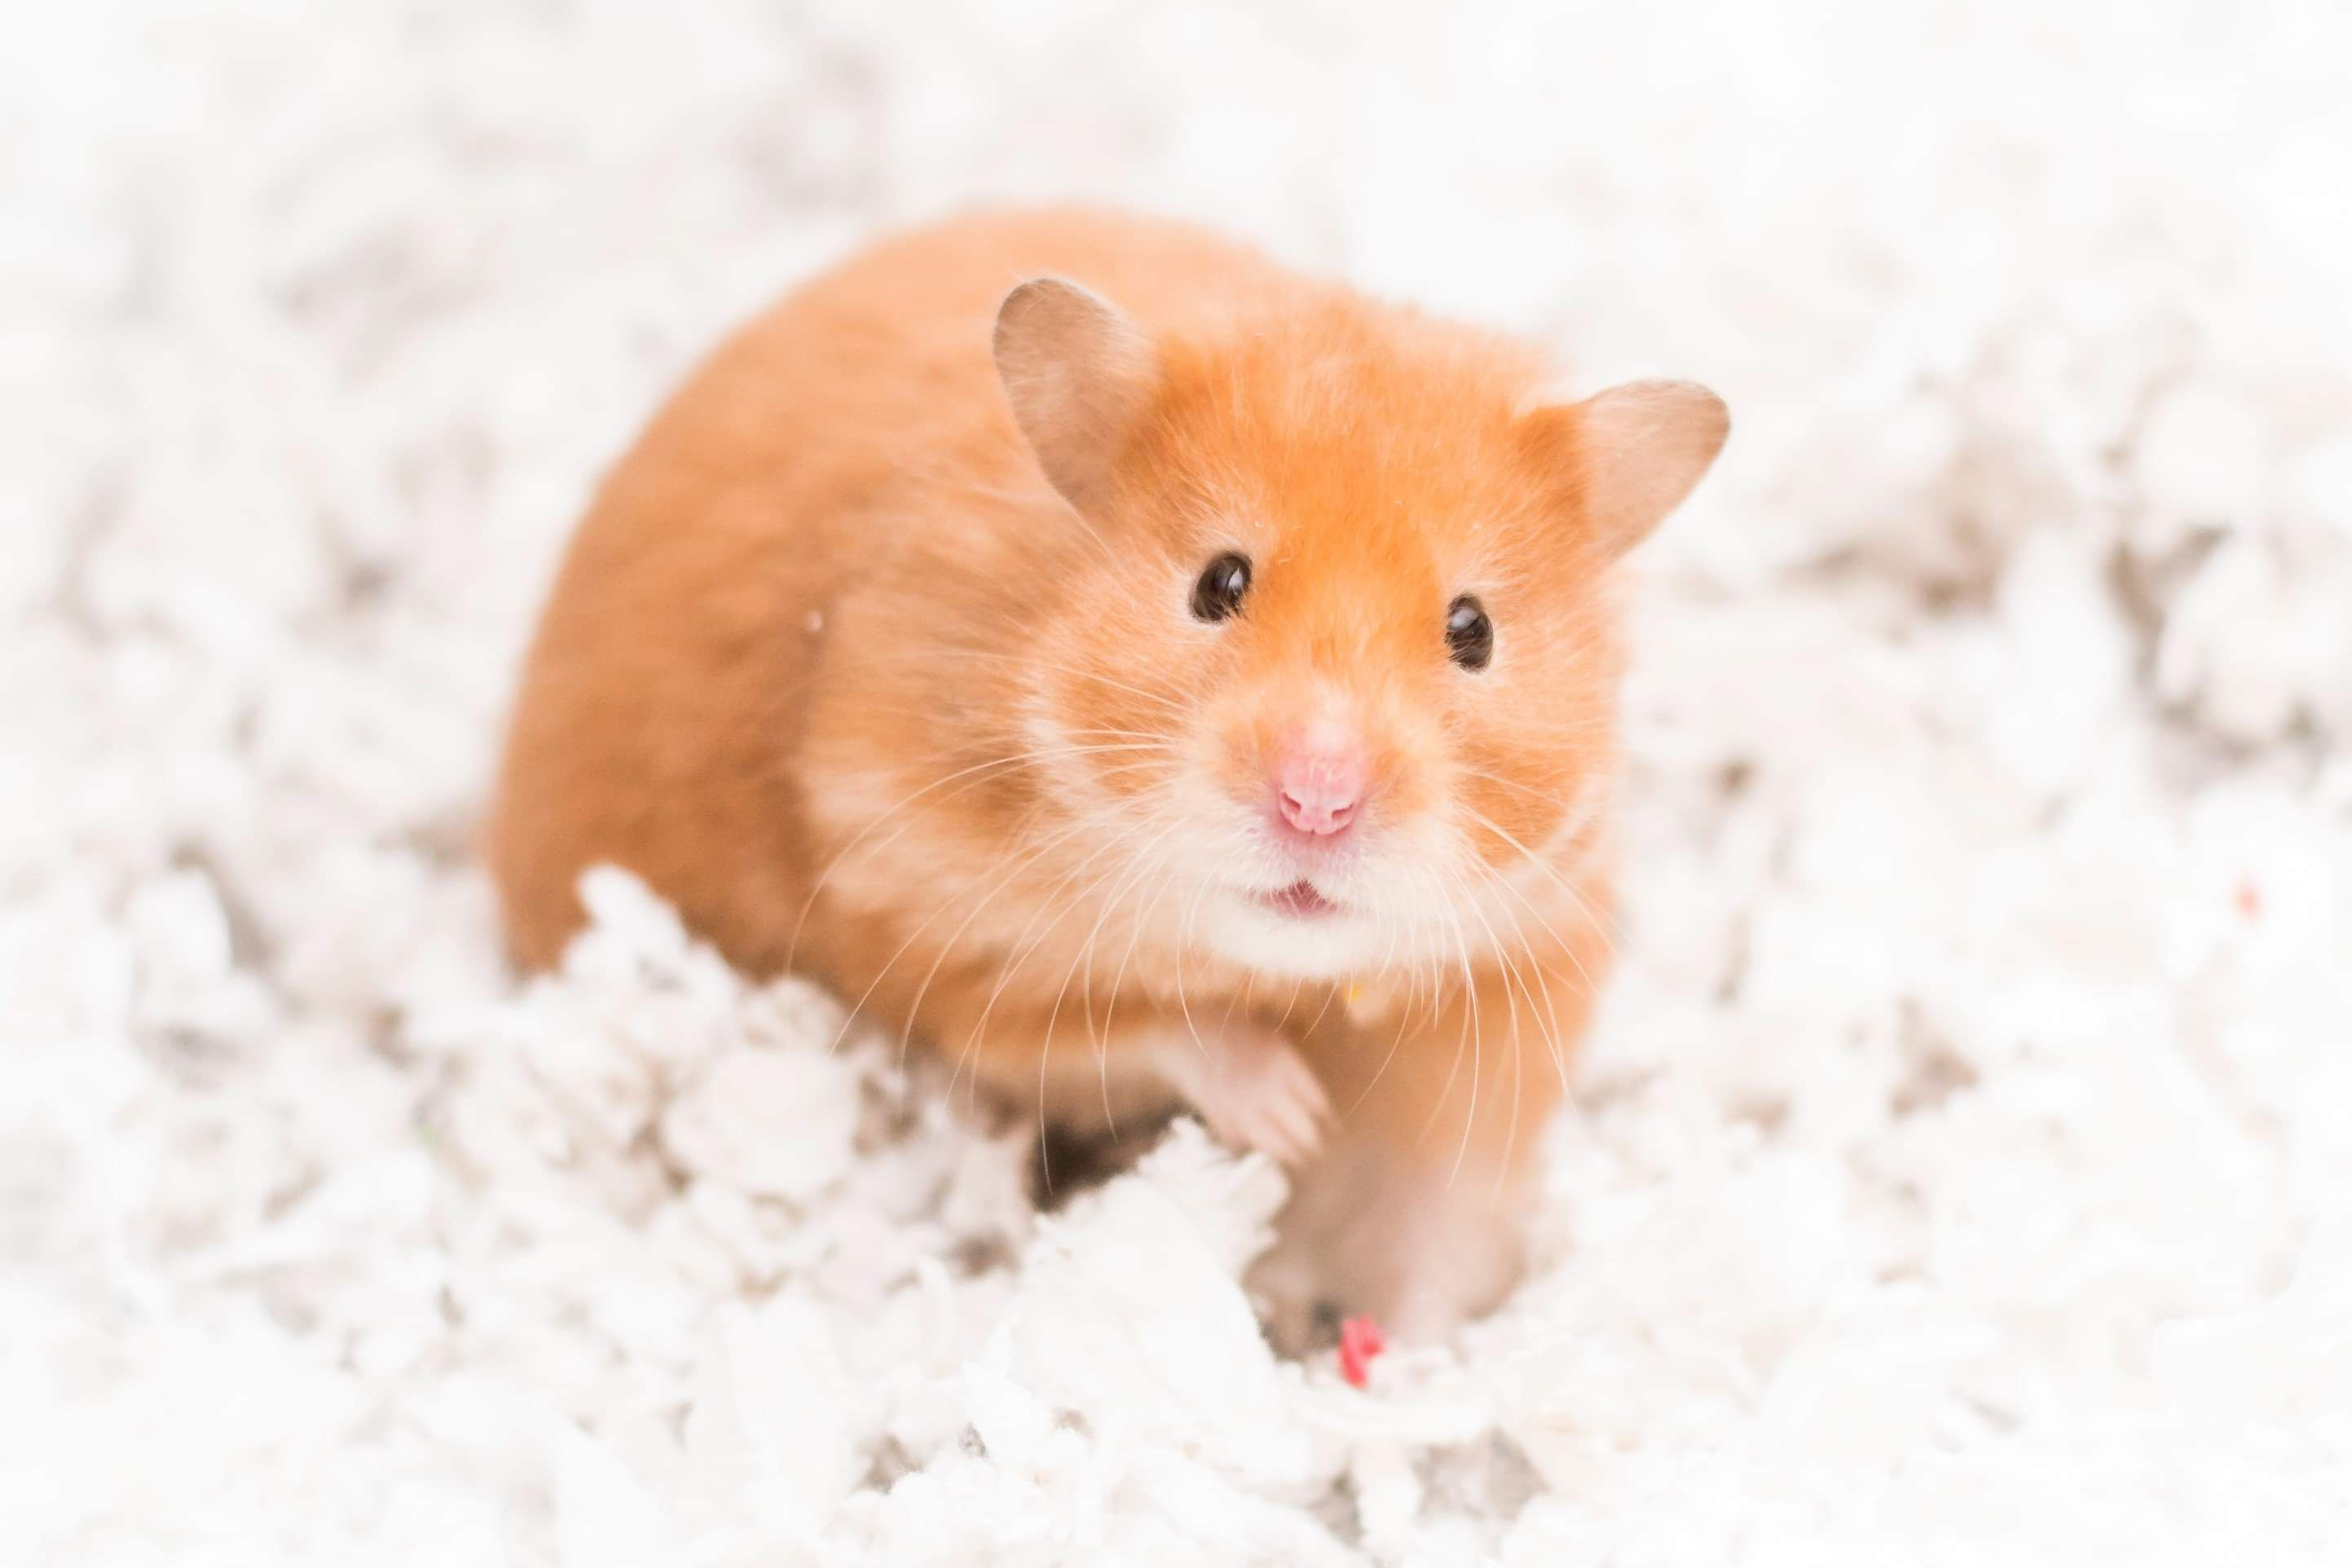 Perks Of Having A Curious Hamster They Always Look At The Camera Hamster Hamsters Rodent Pet Hamster Pets Animals